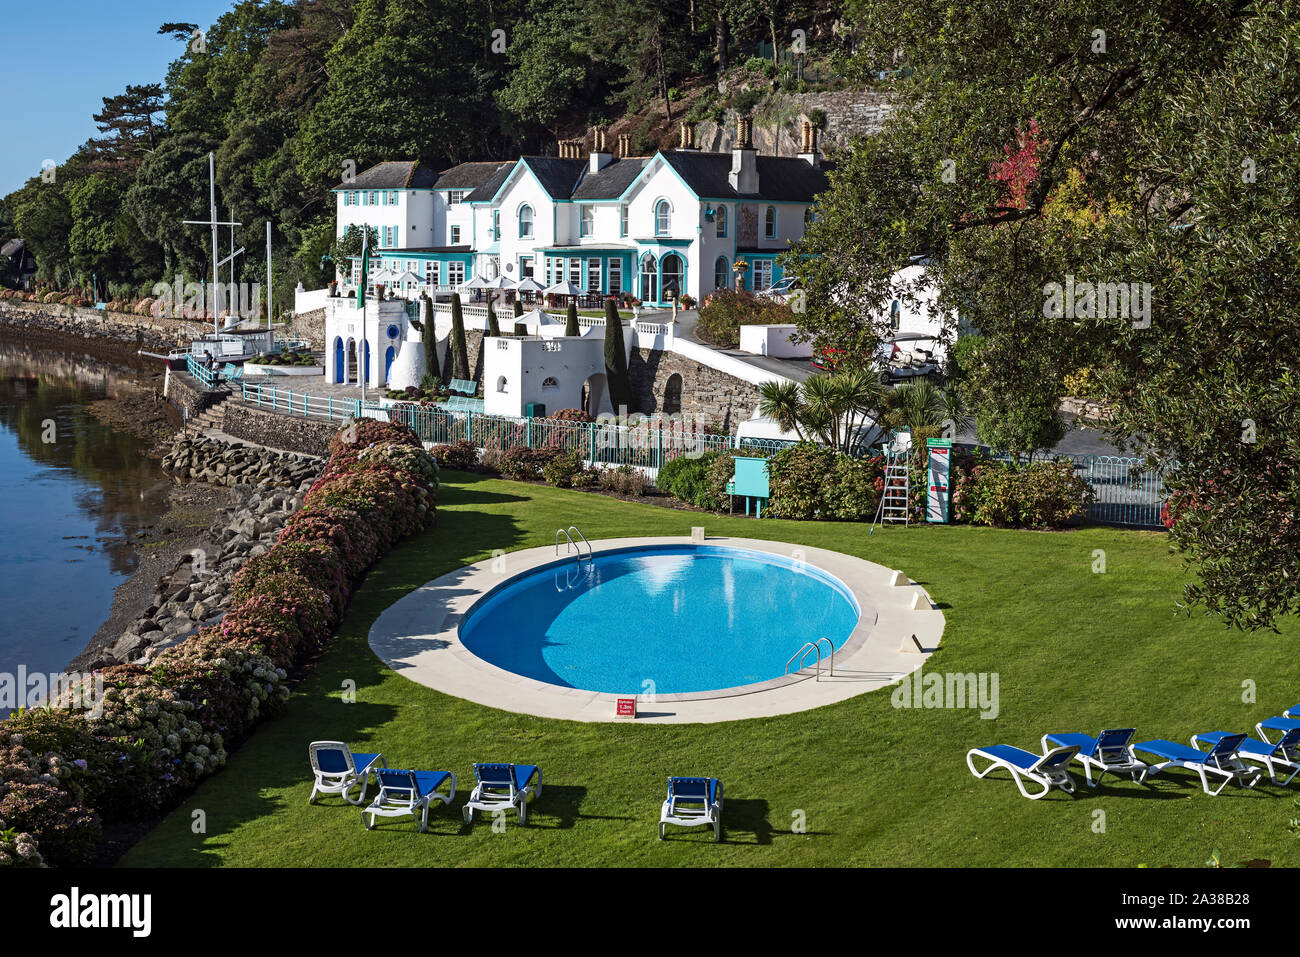 Colourful hotel building on the quay at the hillside village of Portmeirion, Wales, on the estuary of the River Dwyryd. Stock Photo